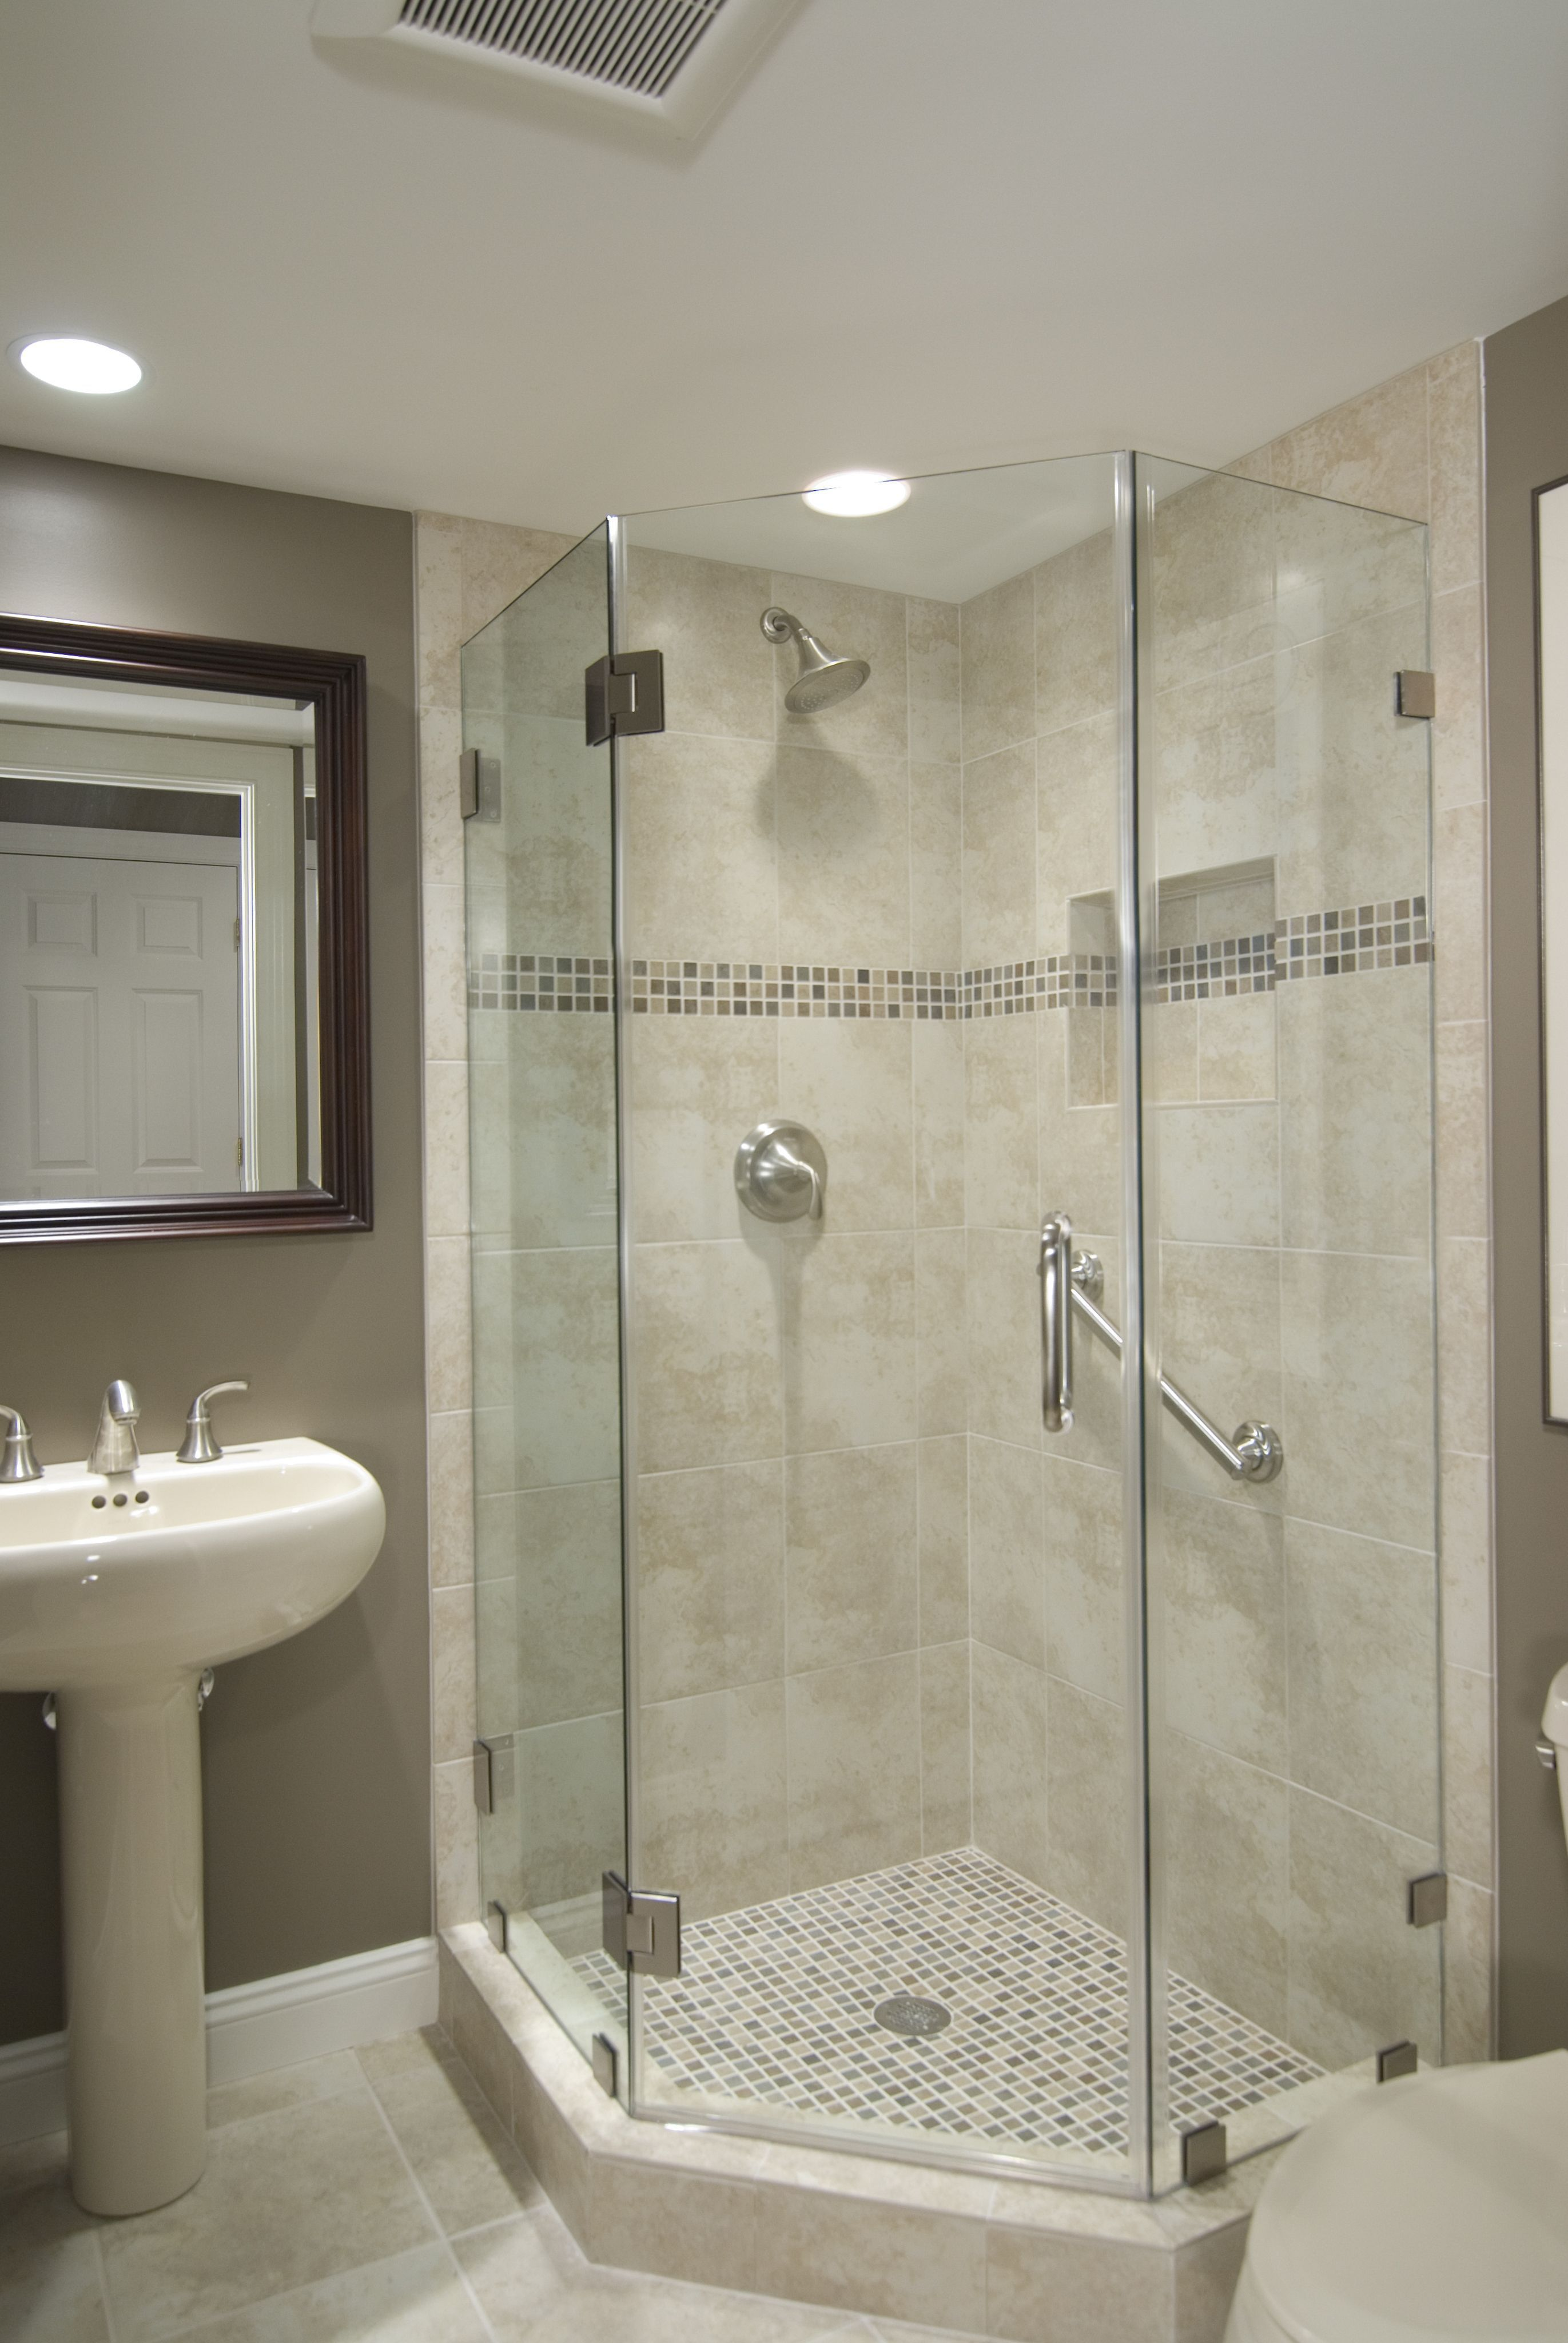 7+ Cool Basement Bathroom Ideas On Budget, Check It Out ...